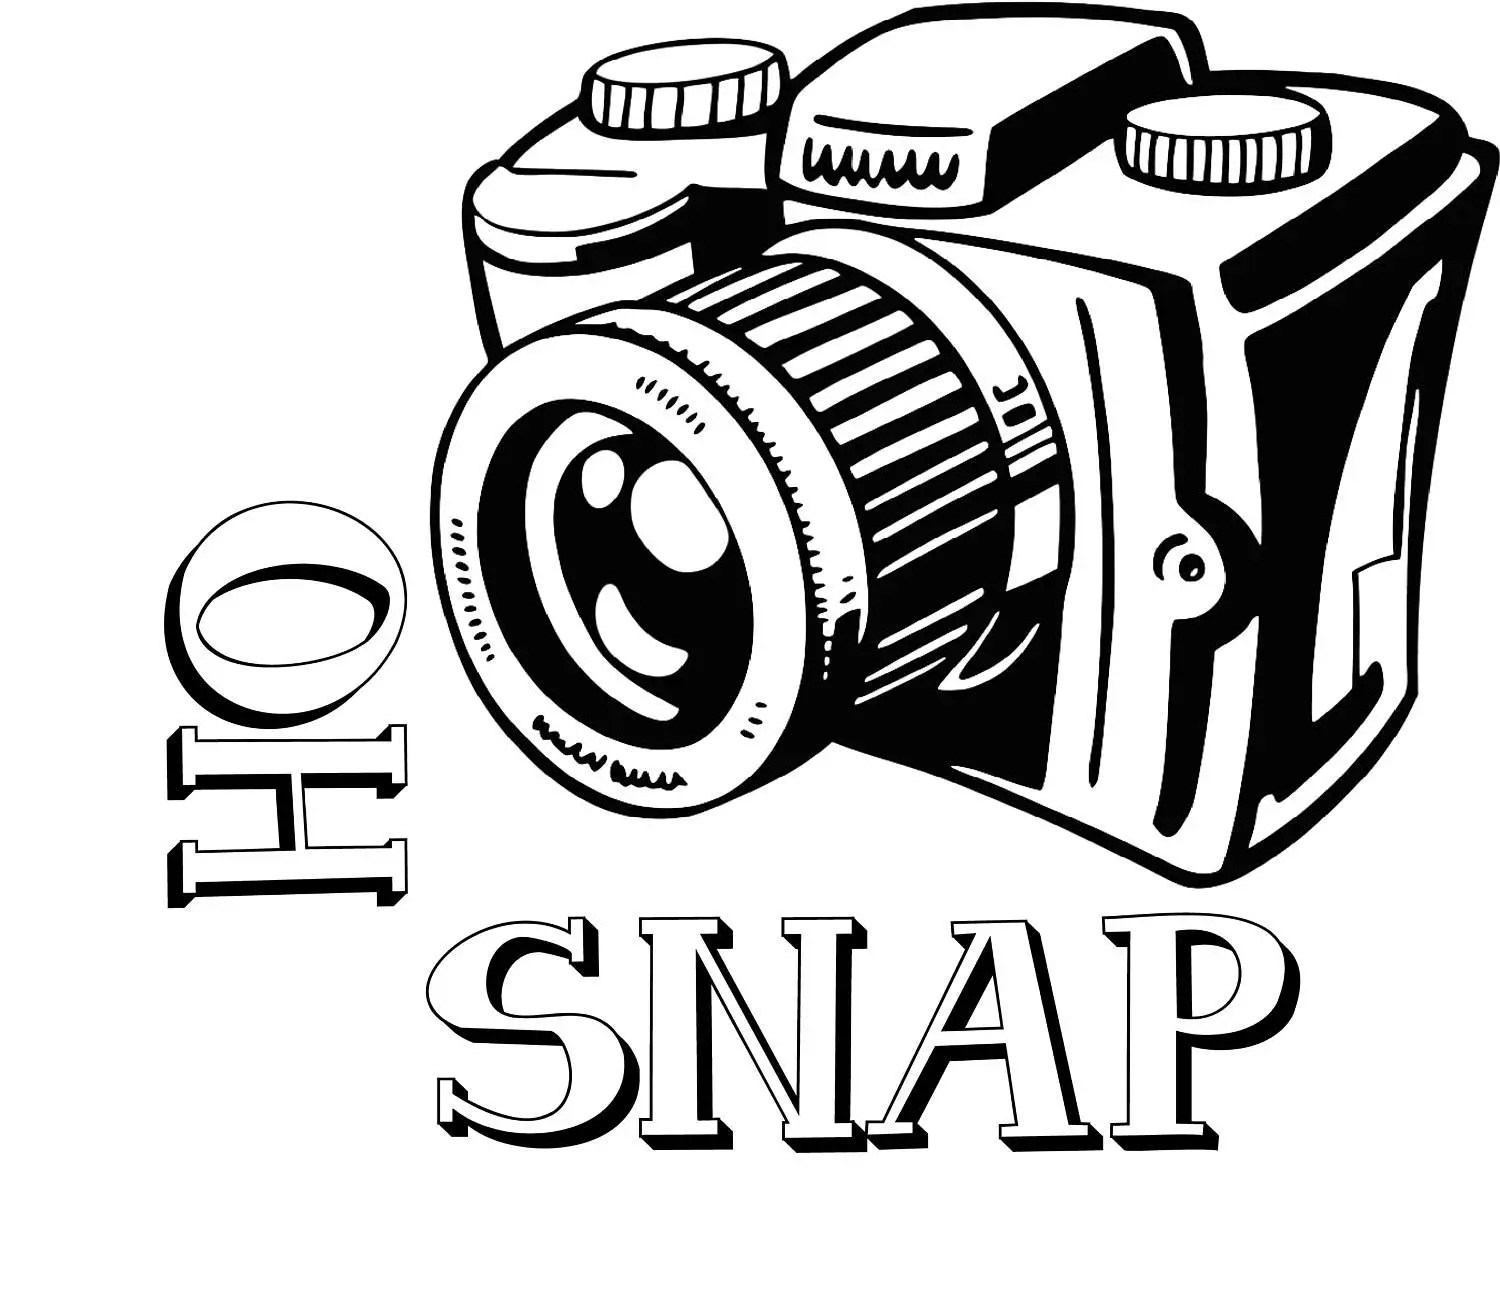 Oh Snap Camera Svg Digital Download File From Tstoplease